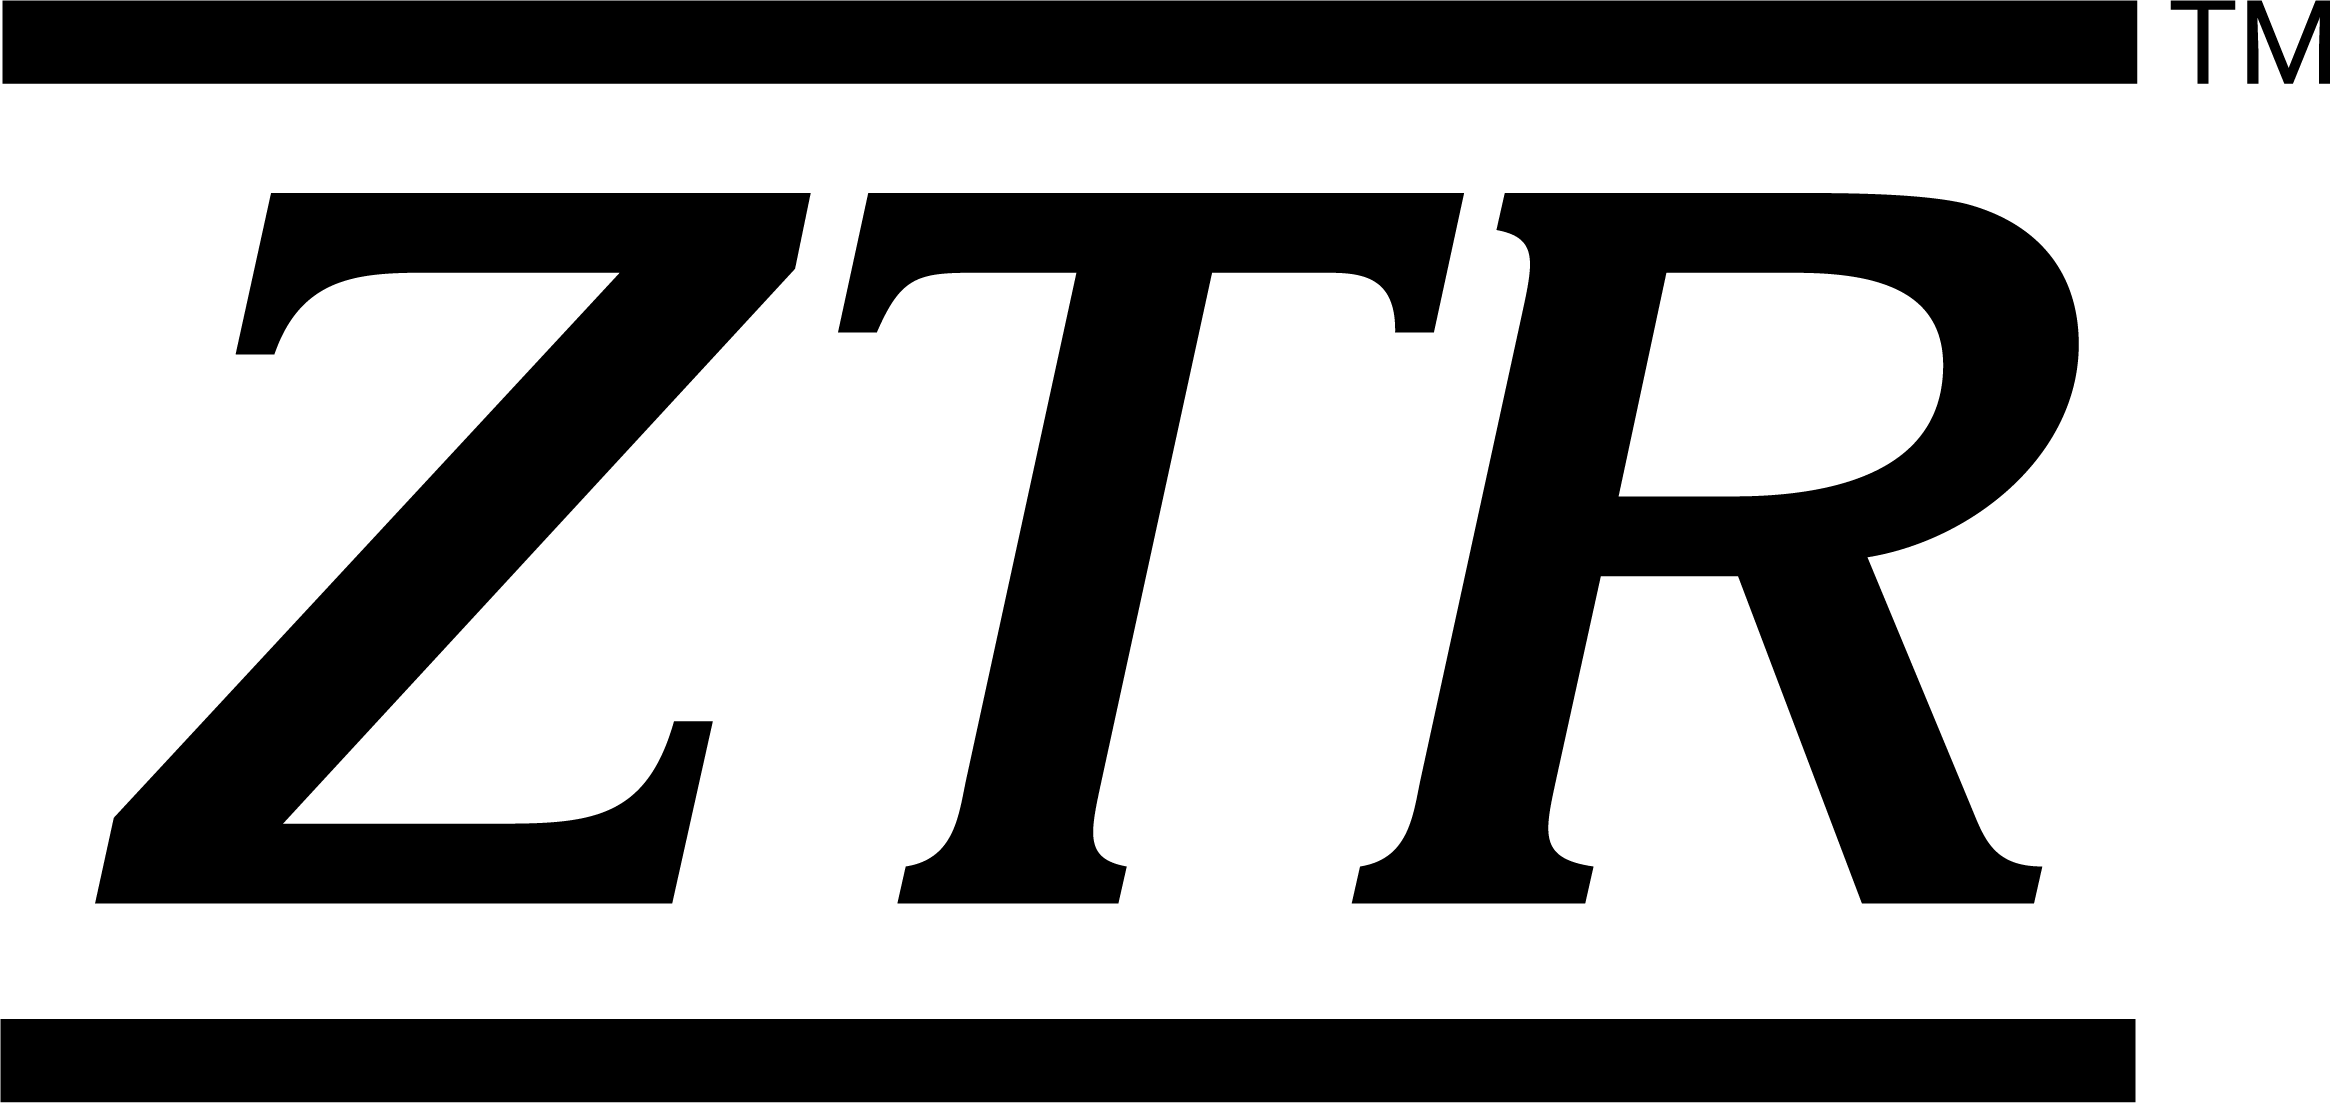 ztr_logo_source_black